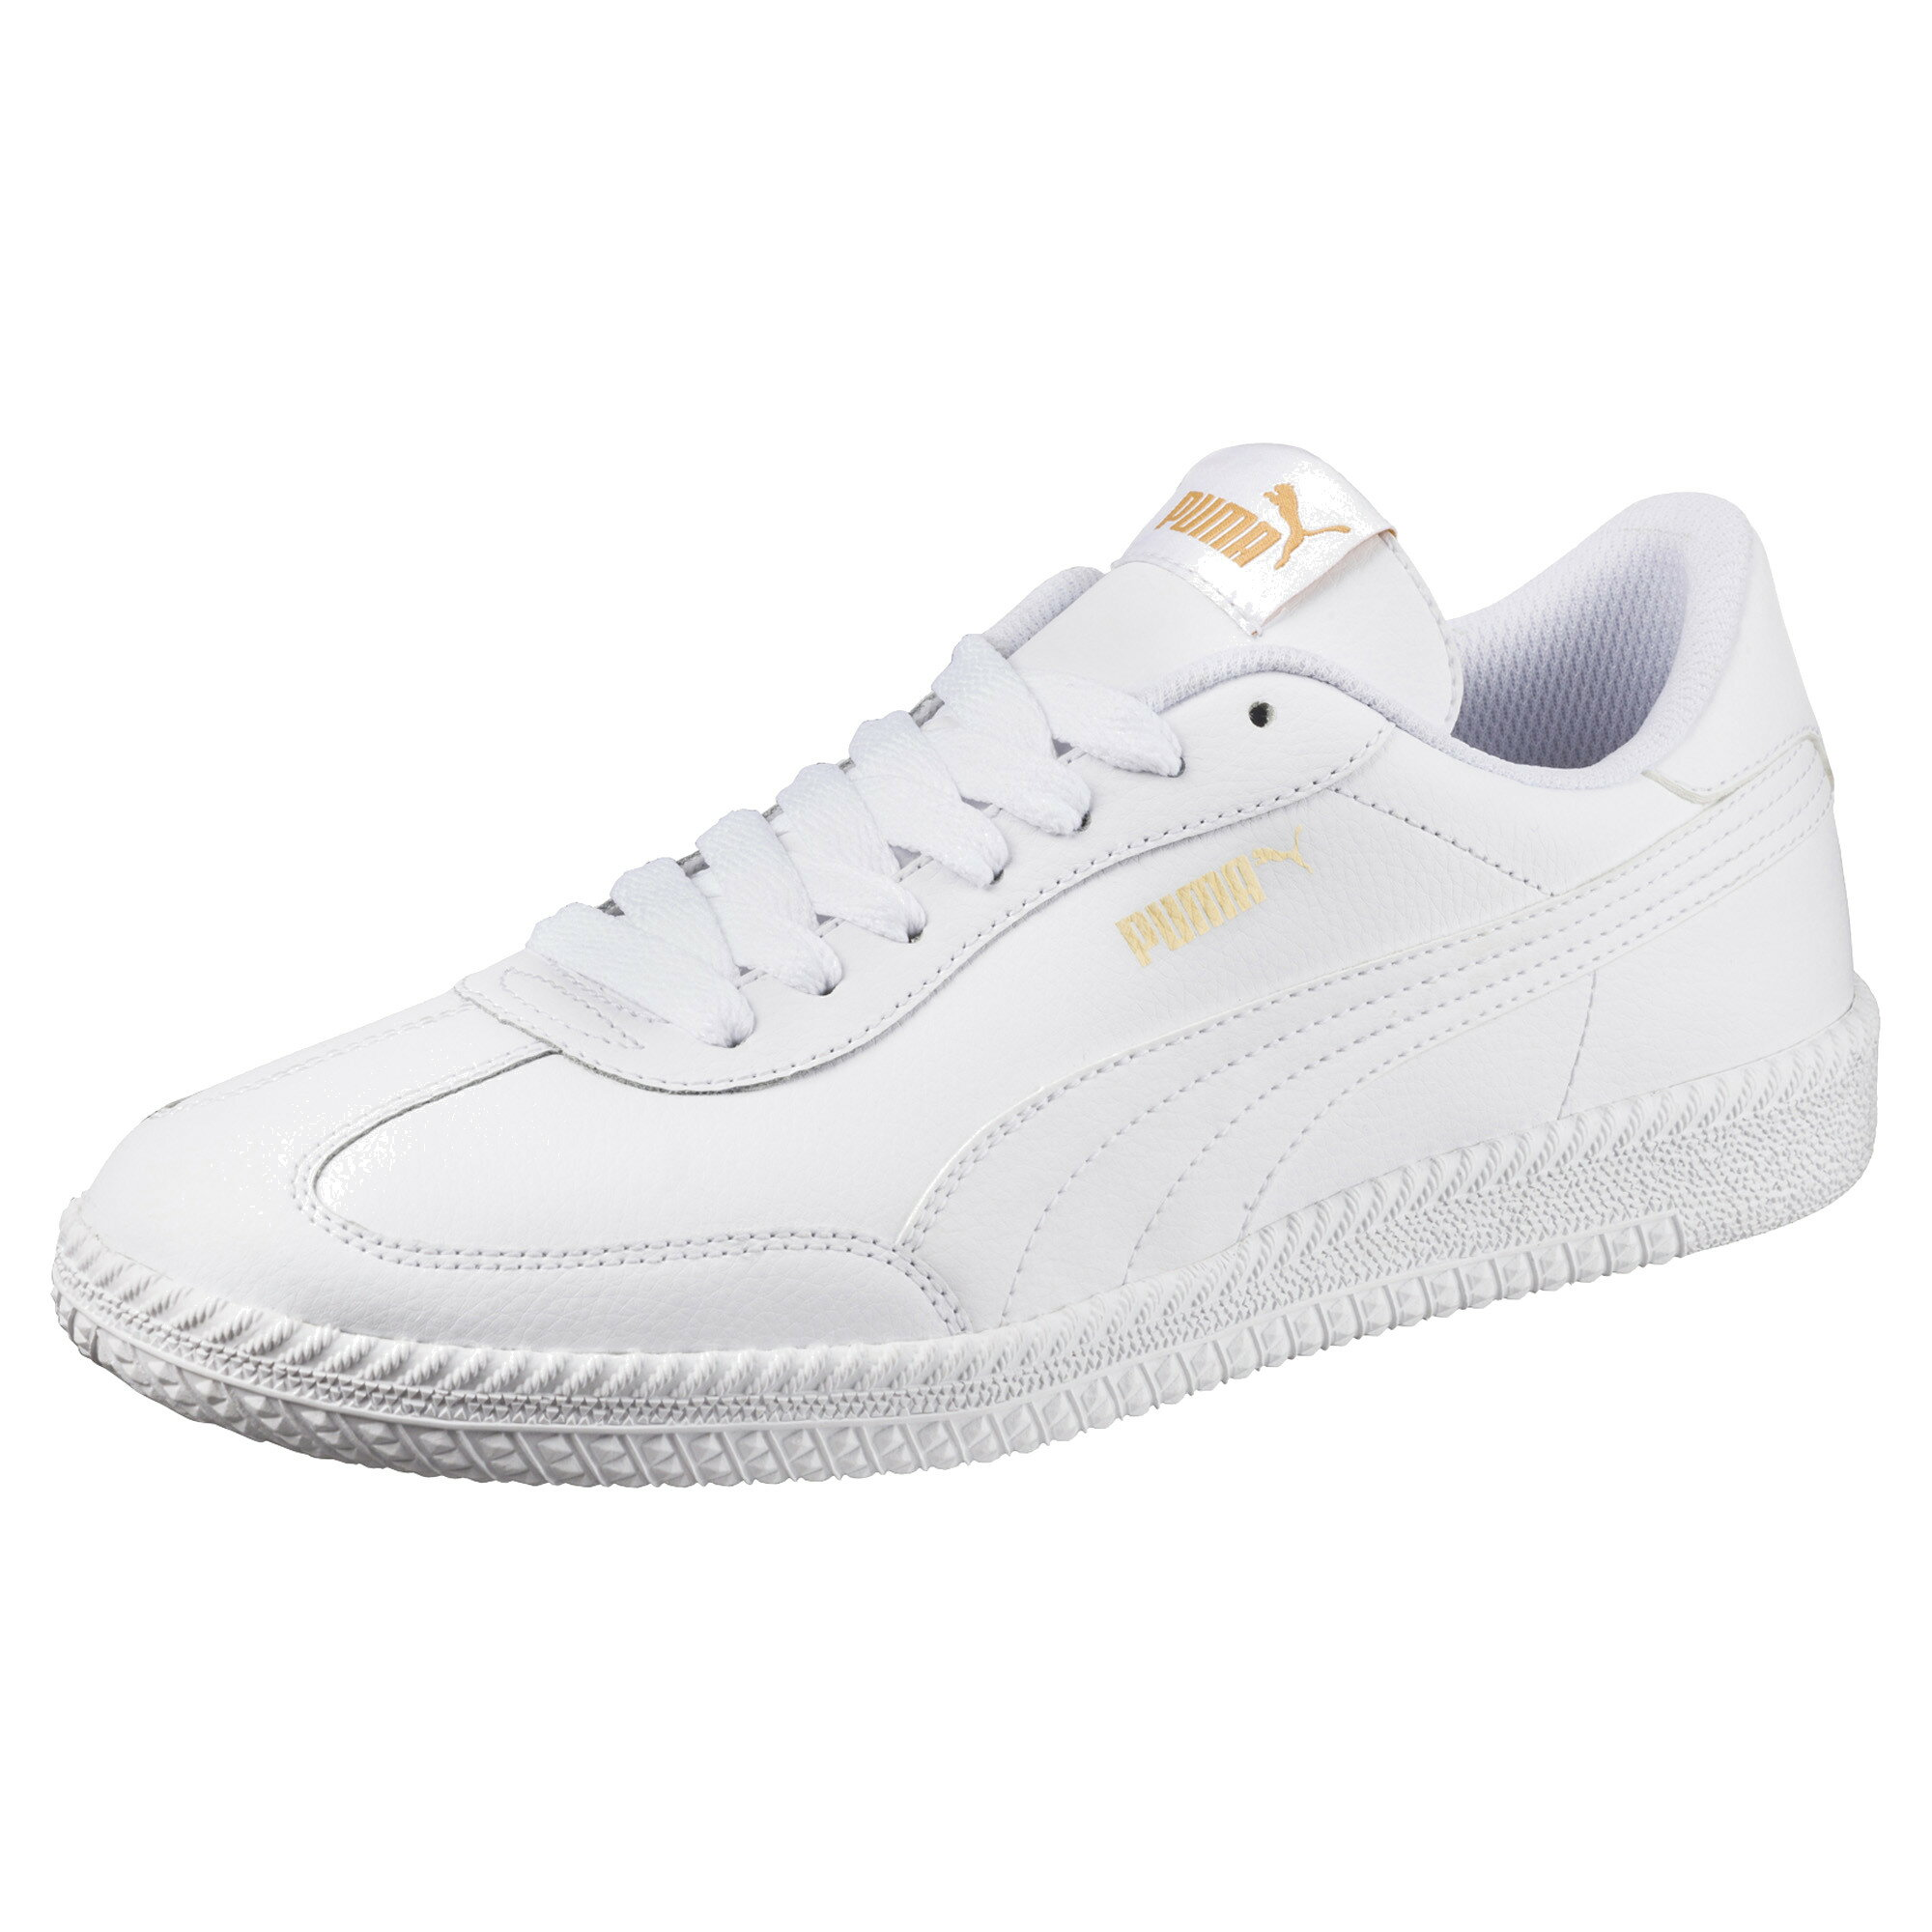 abc9c53469c Official Puma Store  PUMA Astro Cup Leather Trainers